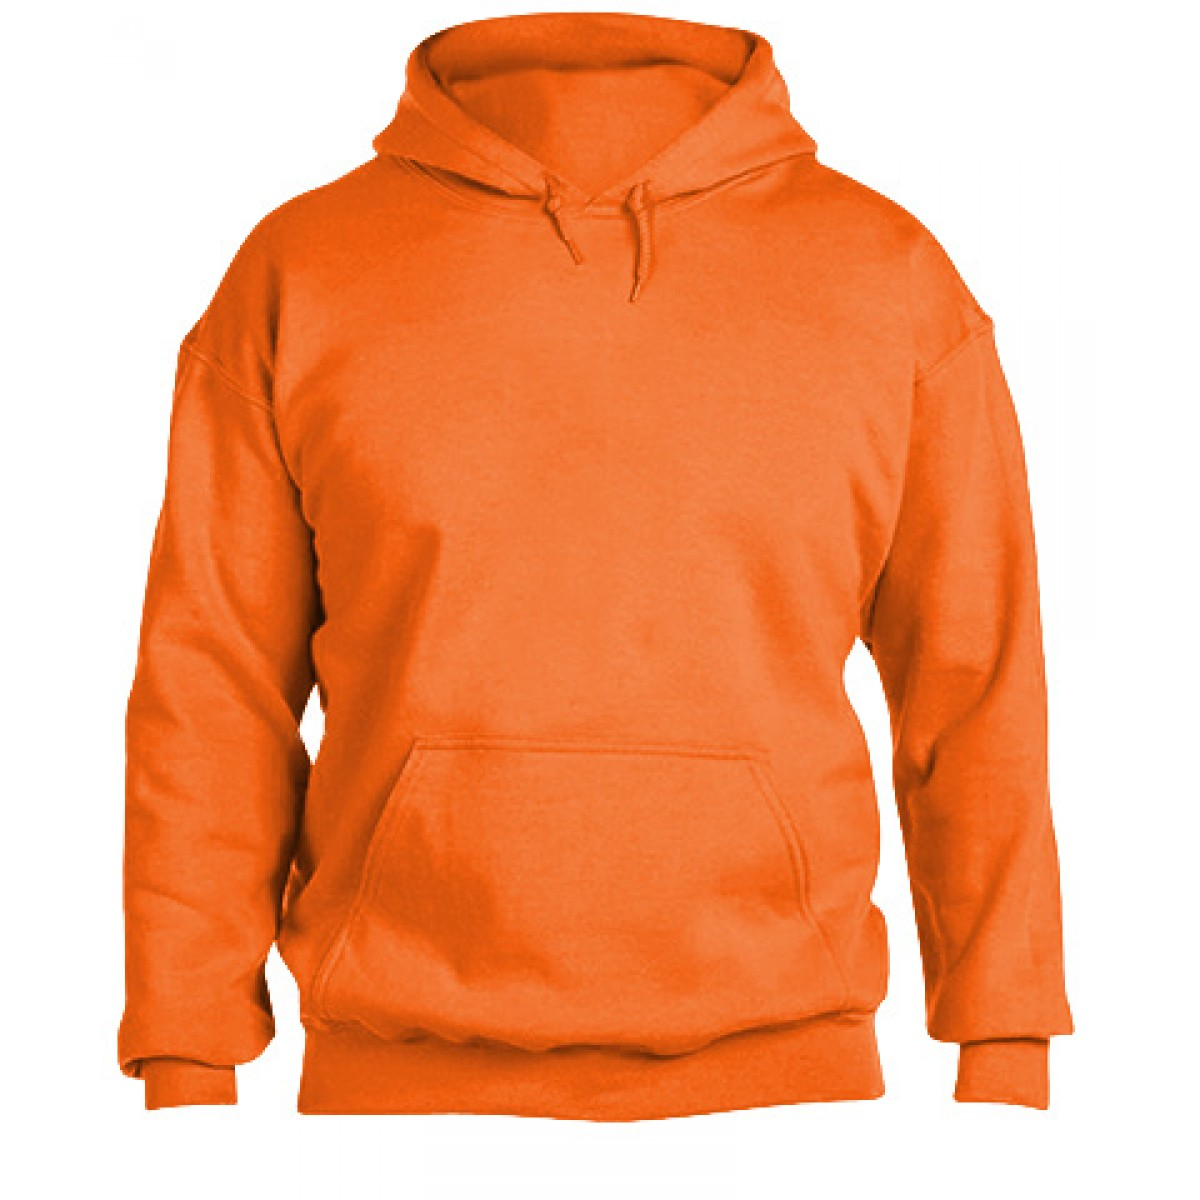 Hooded Sweatshirt 50/50 Heavy Blend-Safety Orange-M